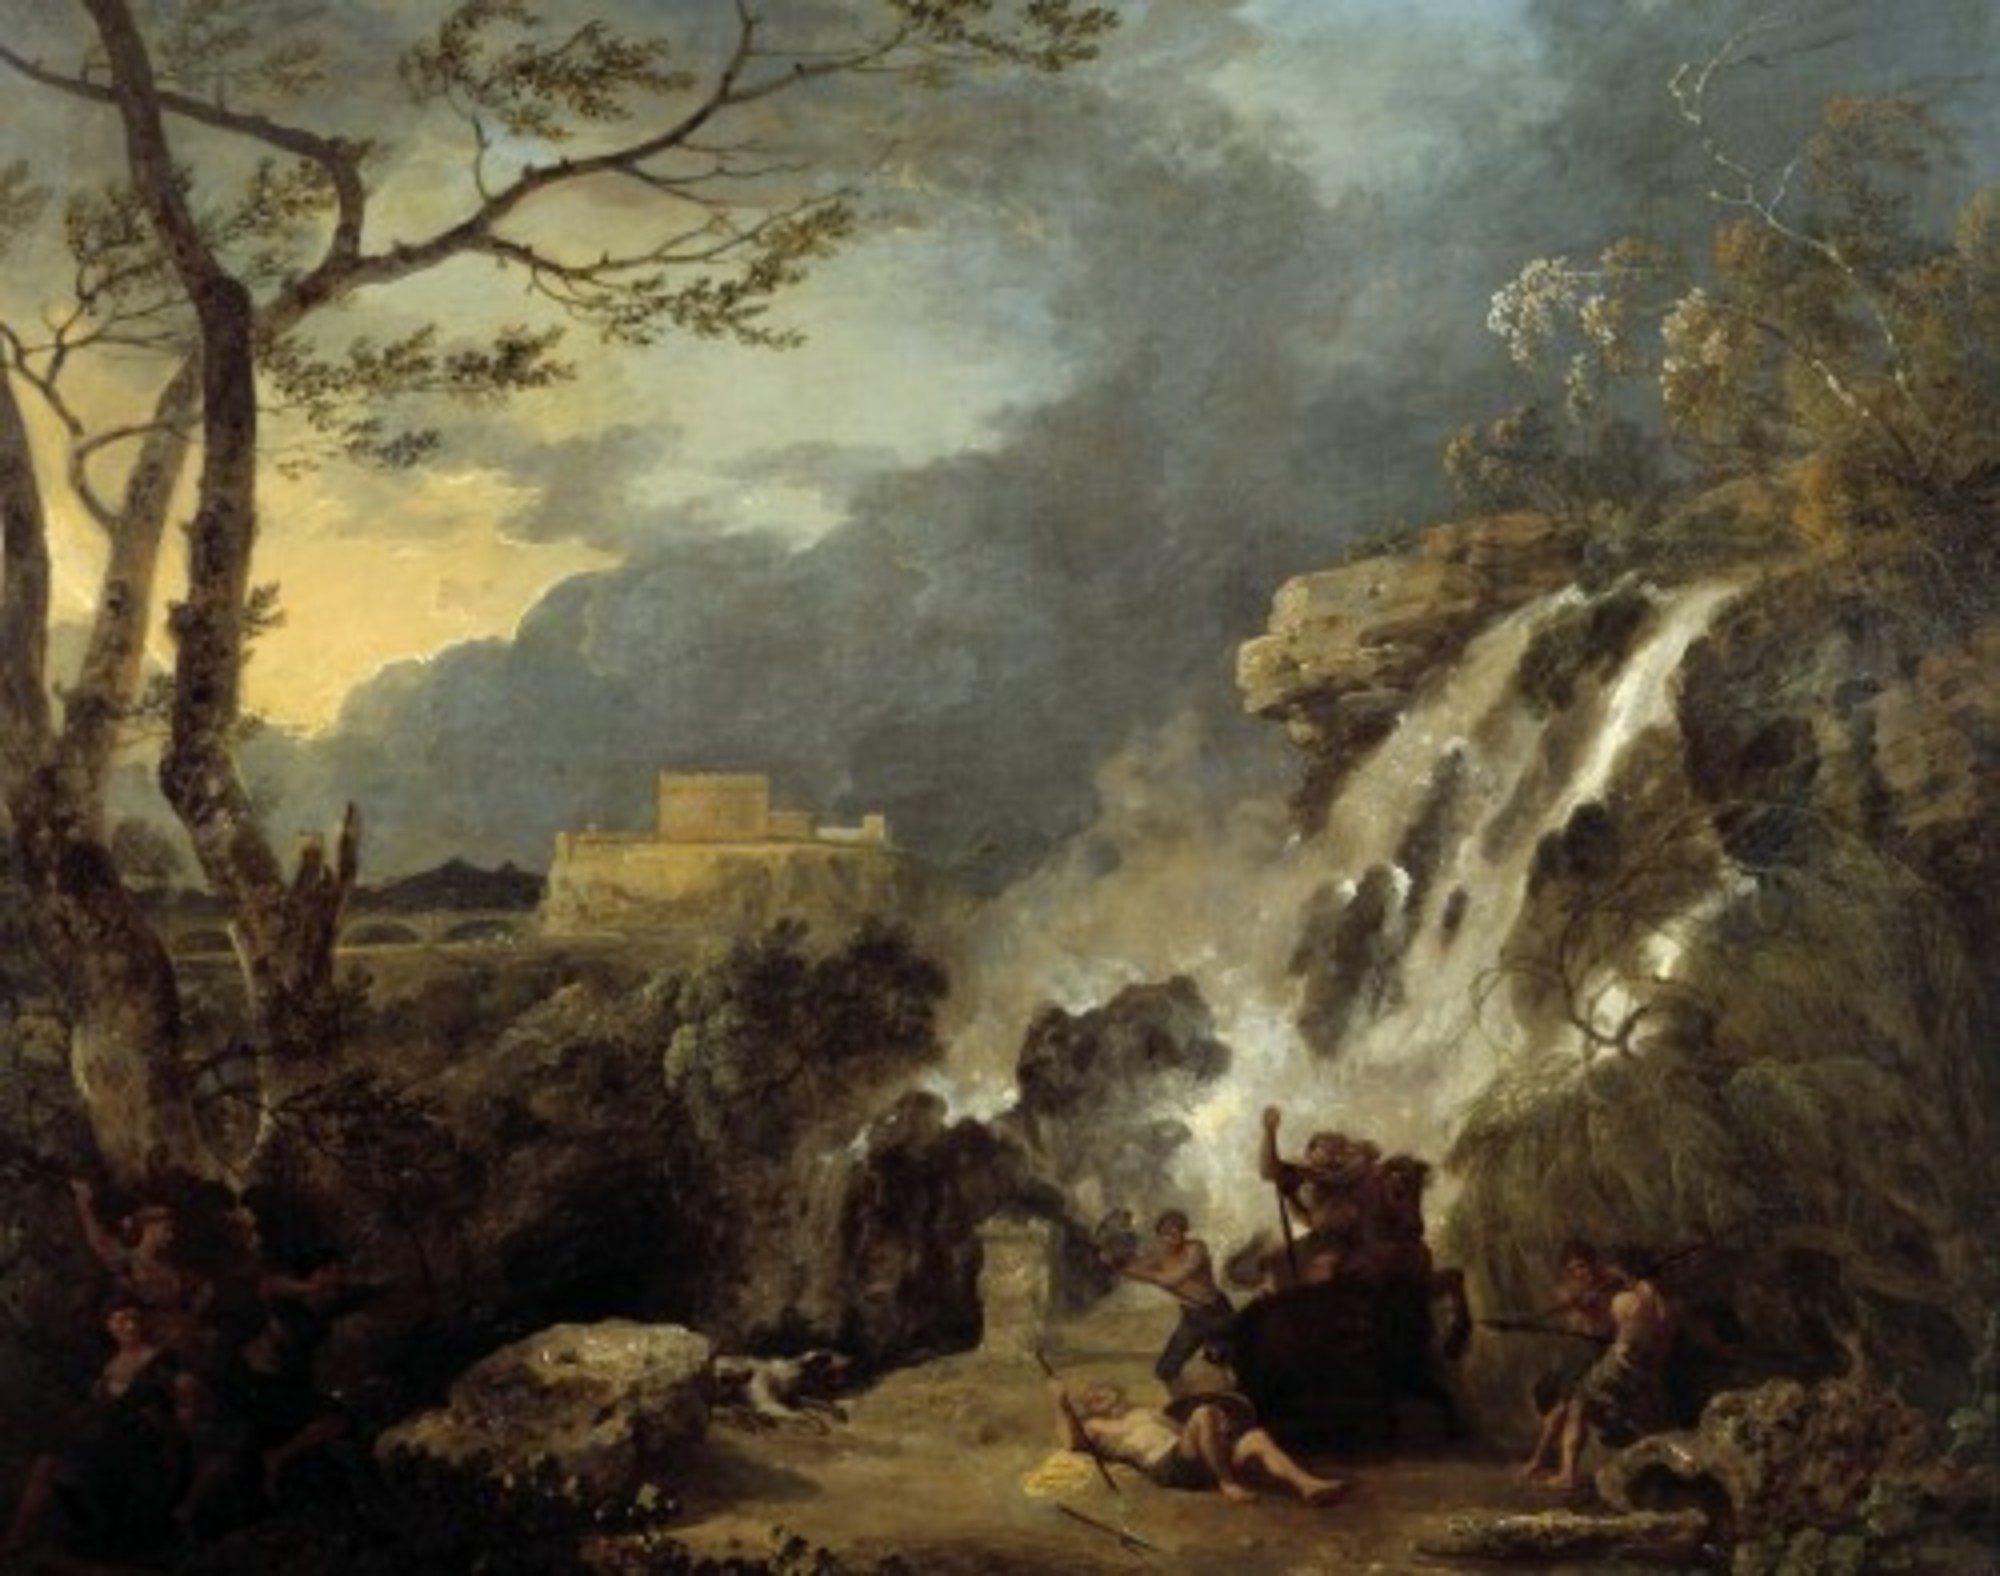 Richard-Wilson---Meleager-and-Atalanta-Tate-Britain.jpg